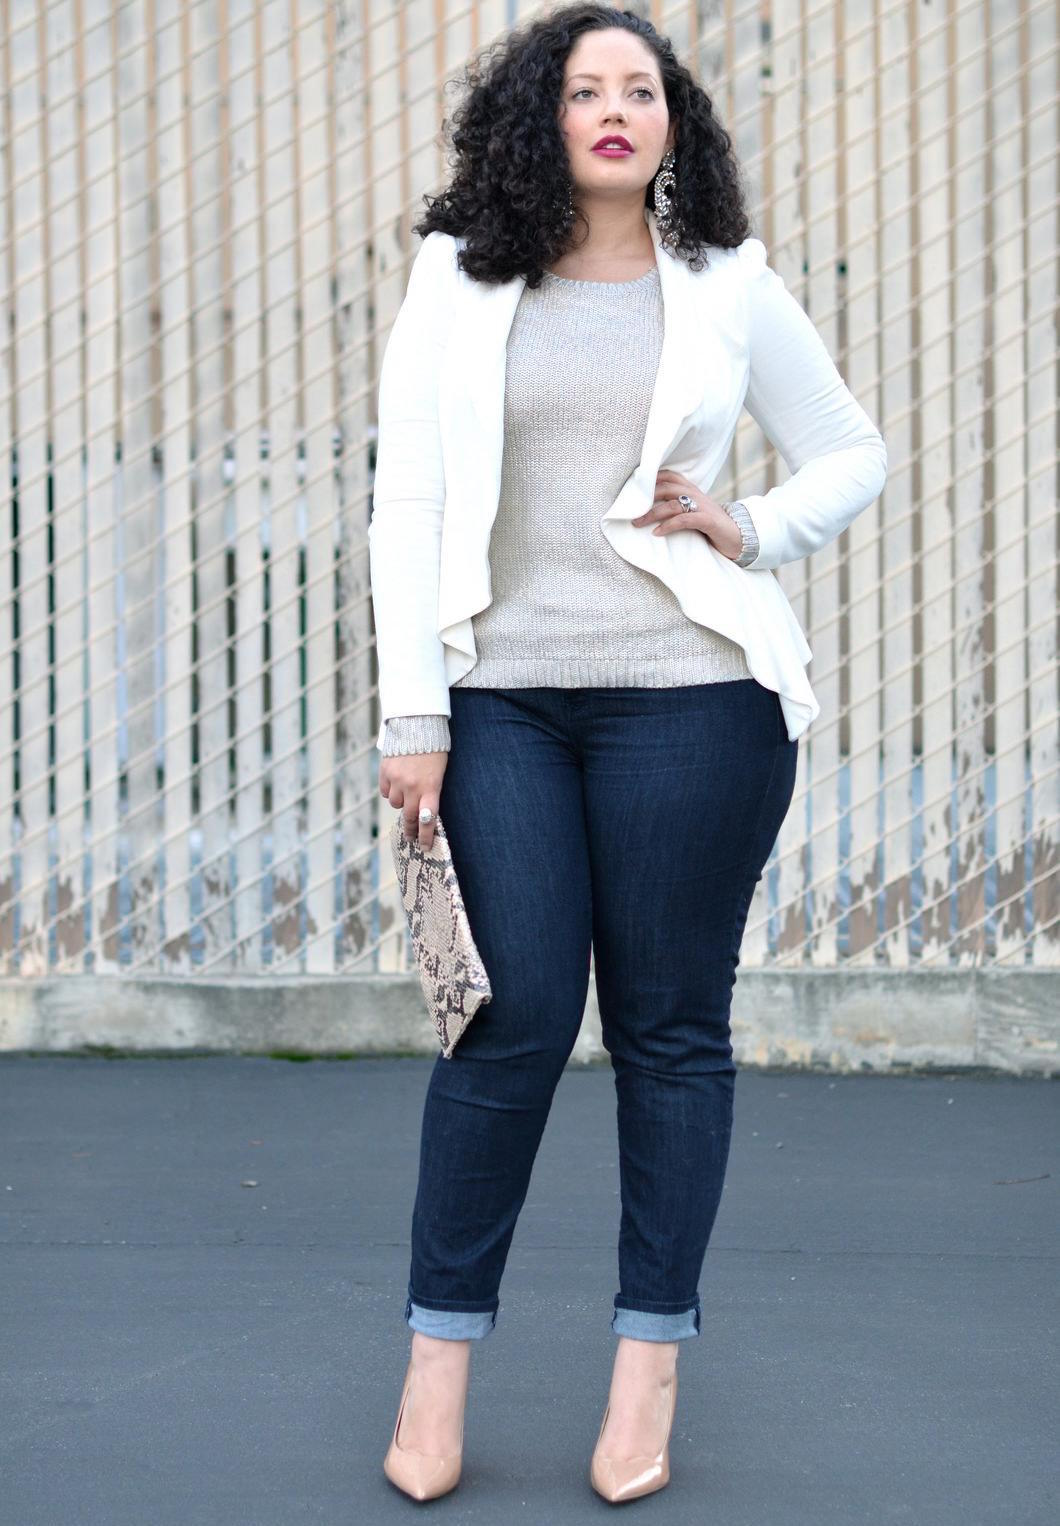 Denim Loves Curves – Jeans For Curvy Women | The Jeans Blog